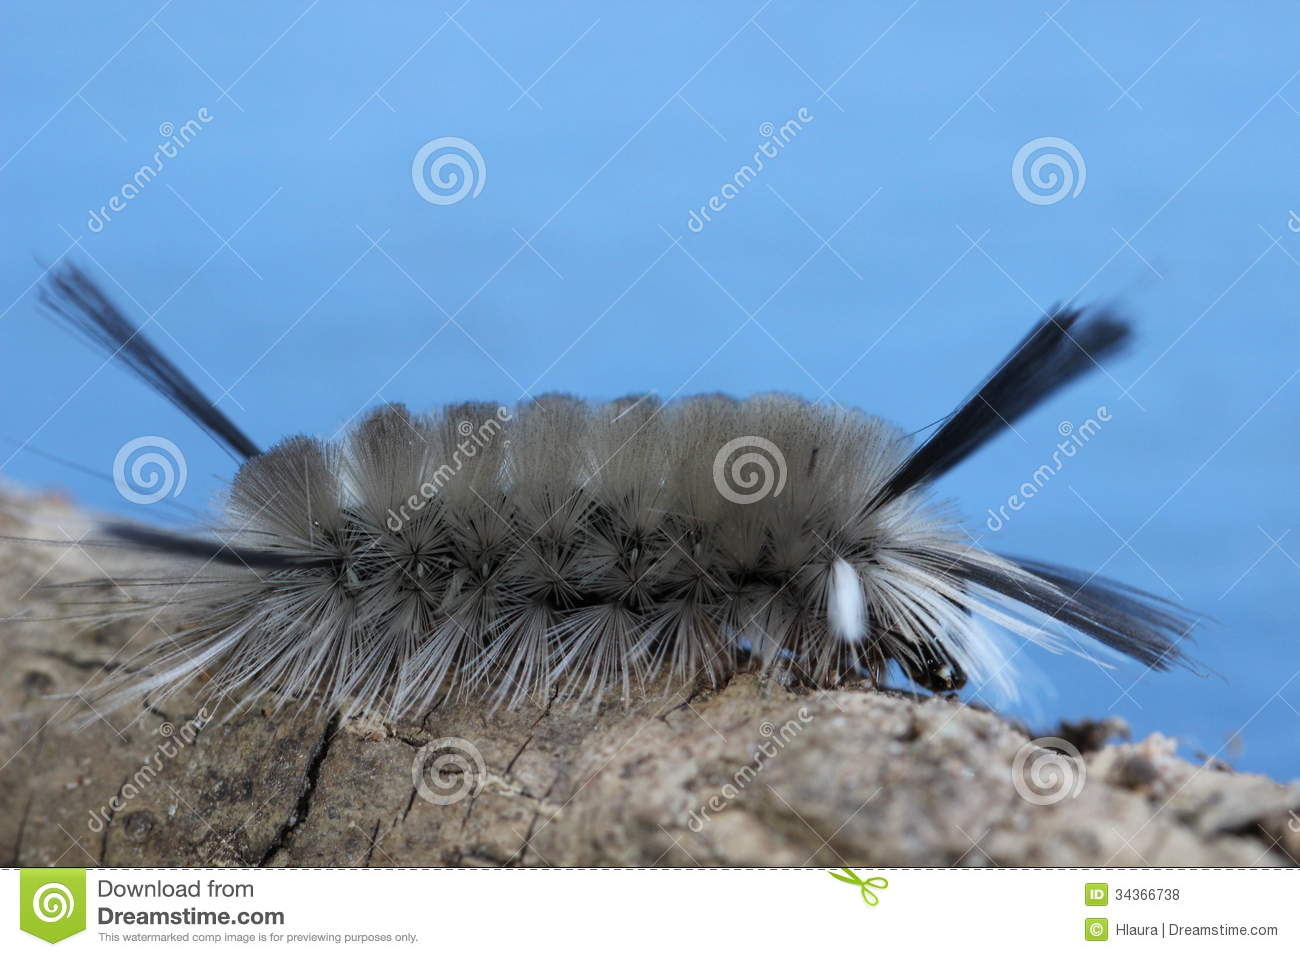 Gray Caterpillars That Are Big: Banded Tussock Moth Caterpillar Royalty Free Stock Photos